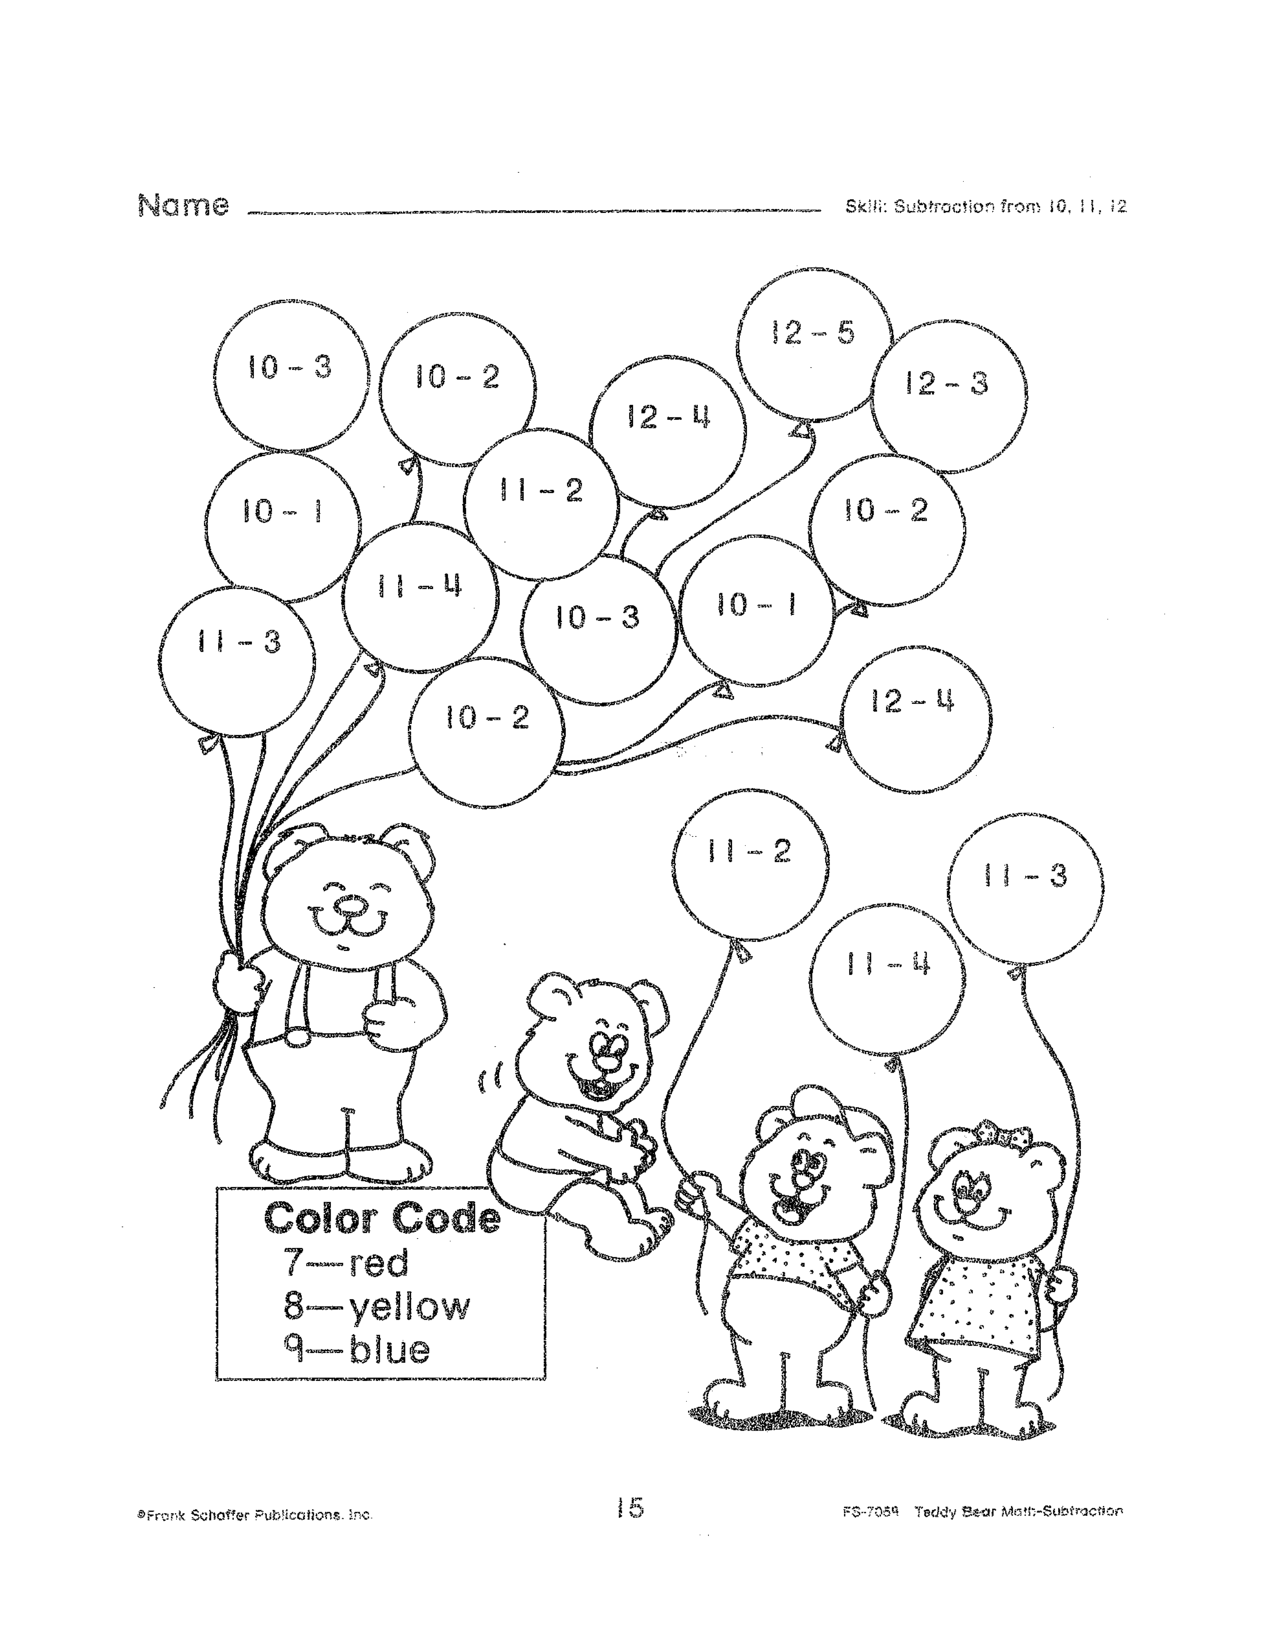 Printable Math Worksheets For 2nd Grade Worksheets 2nd Grade Second Grade Math Worksheets G Fun Math Worksheets Math Coloring Worksheets Free Math Worksheets